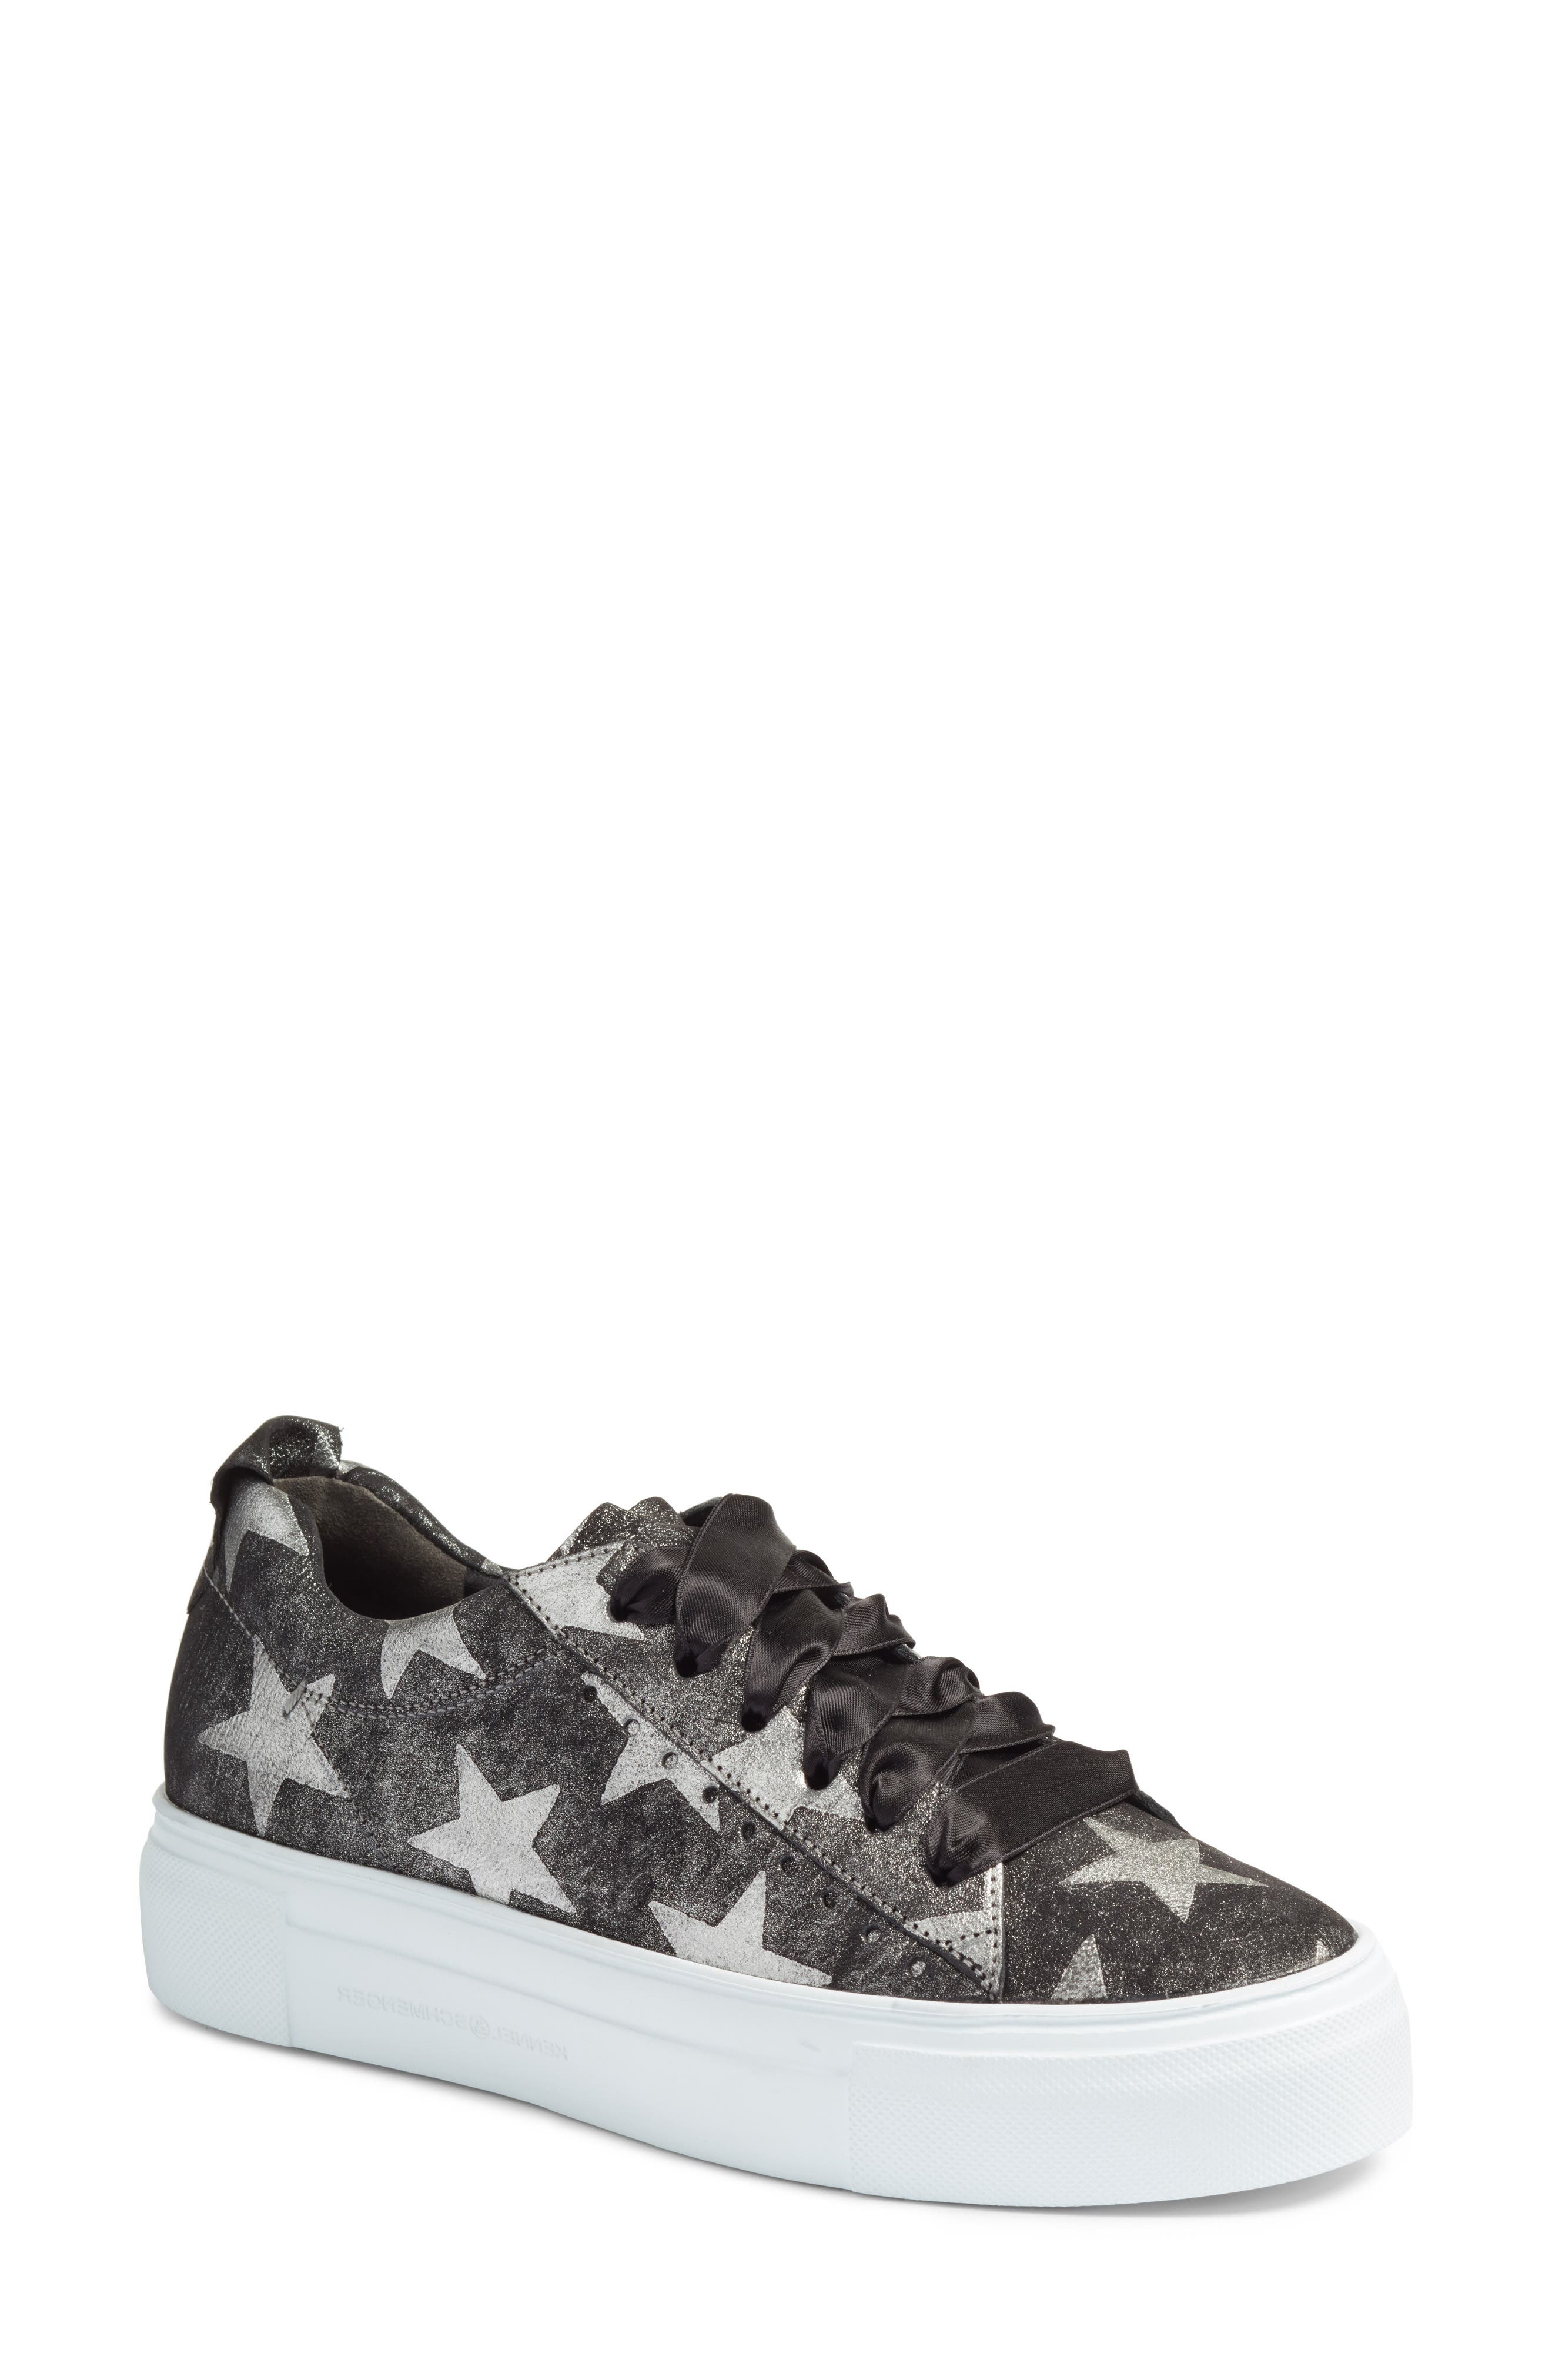 Alternate Image 1 Selected - Kennel & Schmenger Big Star Sneaker (Women)